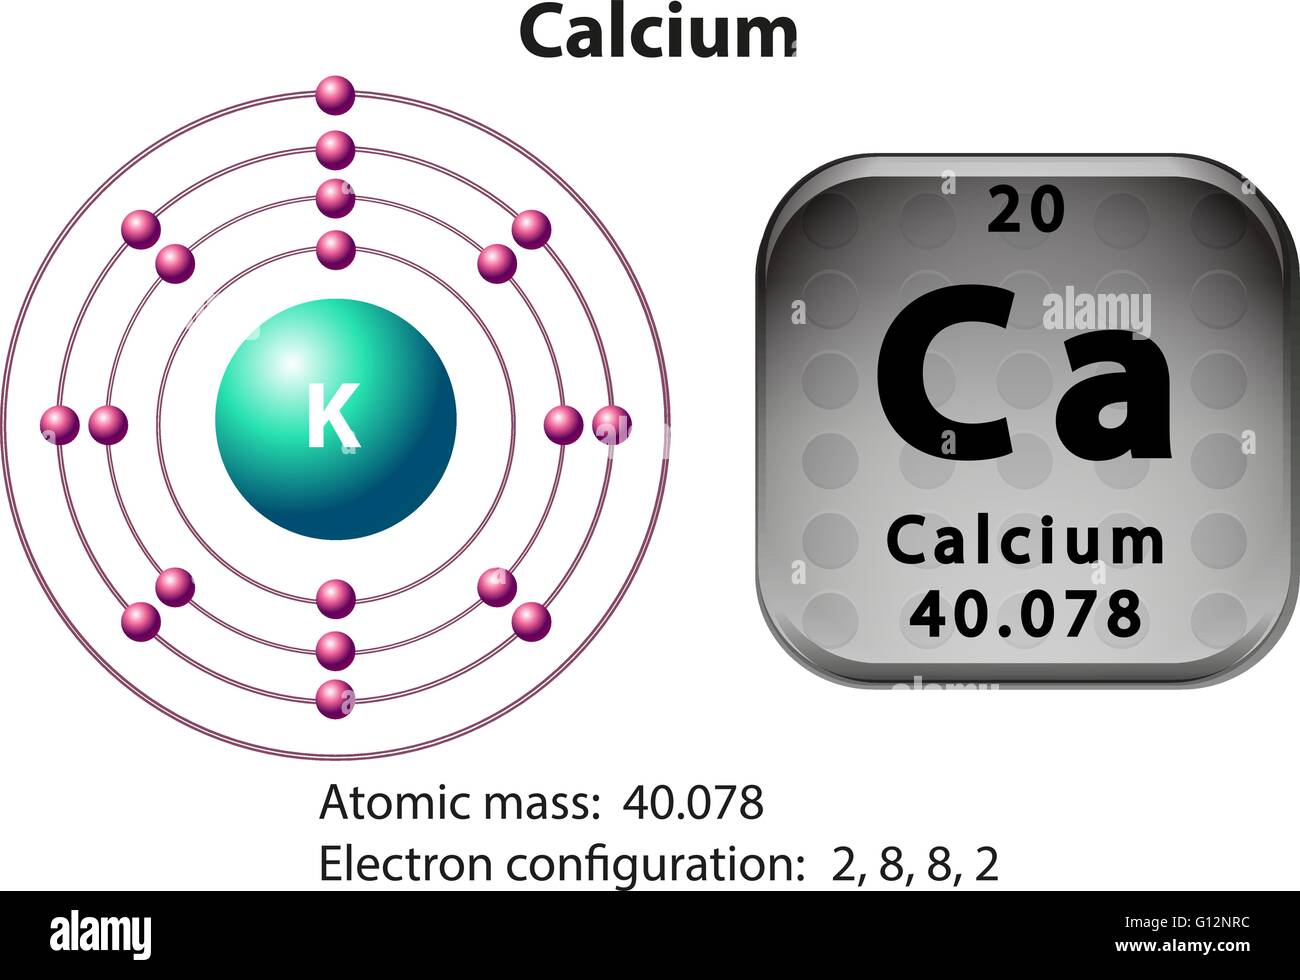 Our calcium page has over 250 facts that span 115 different quantities Each entry has a full citation identifying its source Areas covered include atomic structure